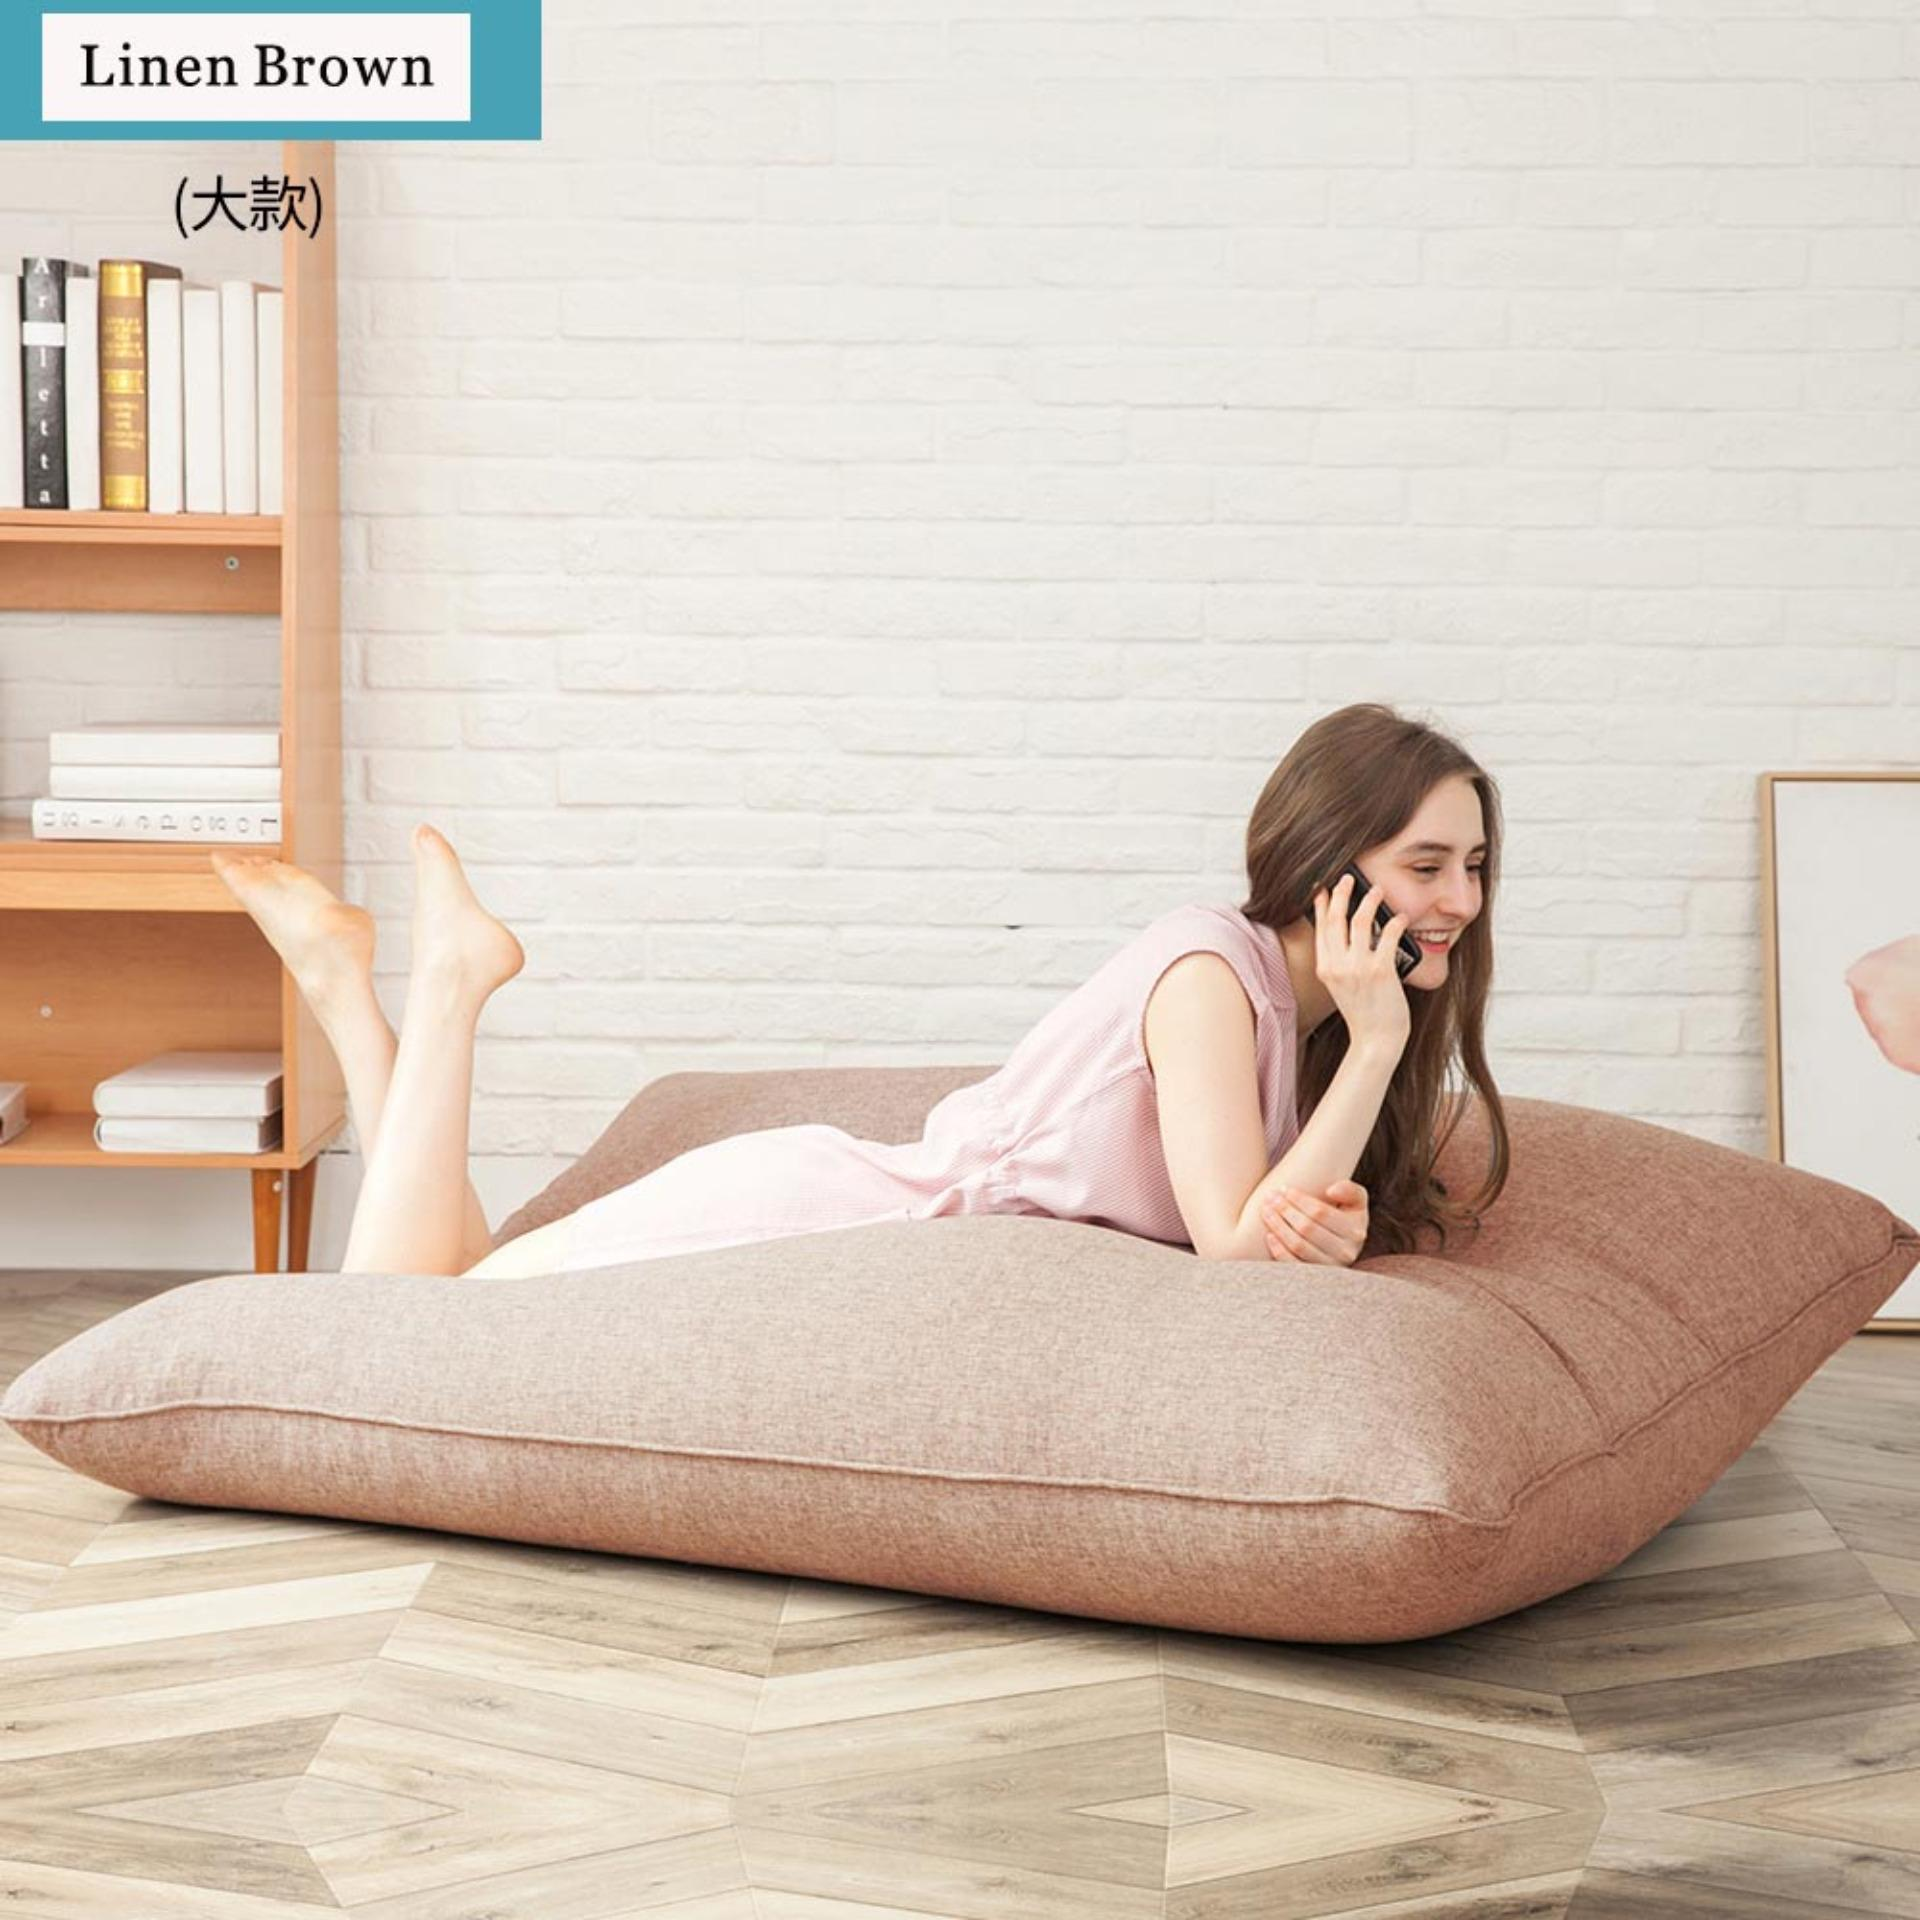 Huge Bean Bag Floor Lounger for Playing Video Games & Watching TV